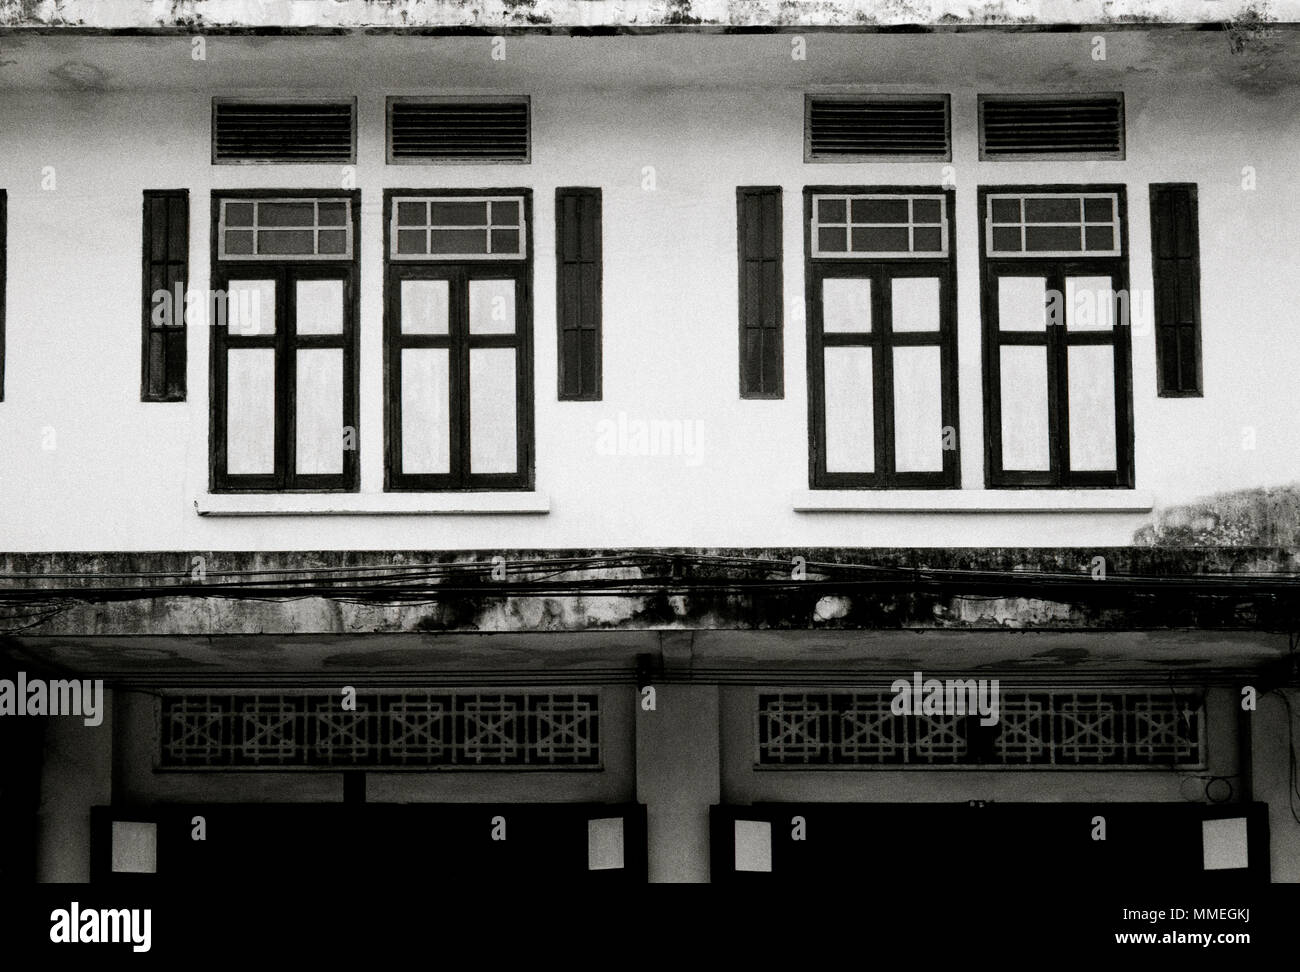 Chinese shophouse building in Bangkok in Thailand in Southeast Asia Far East. Architecture Window Travel B&W - Stock Image